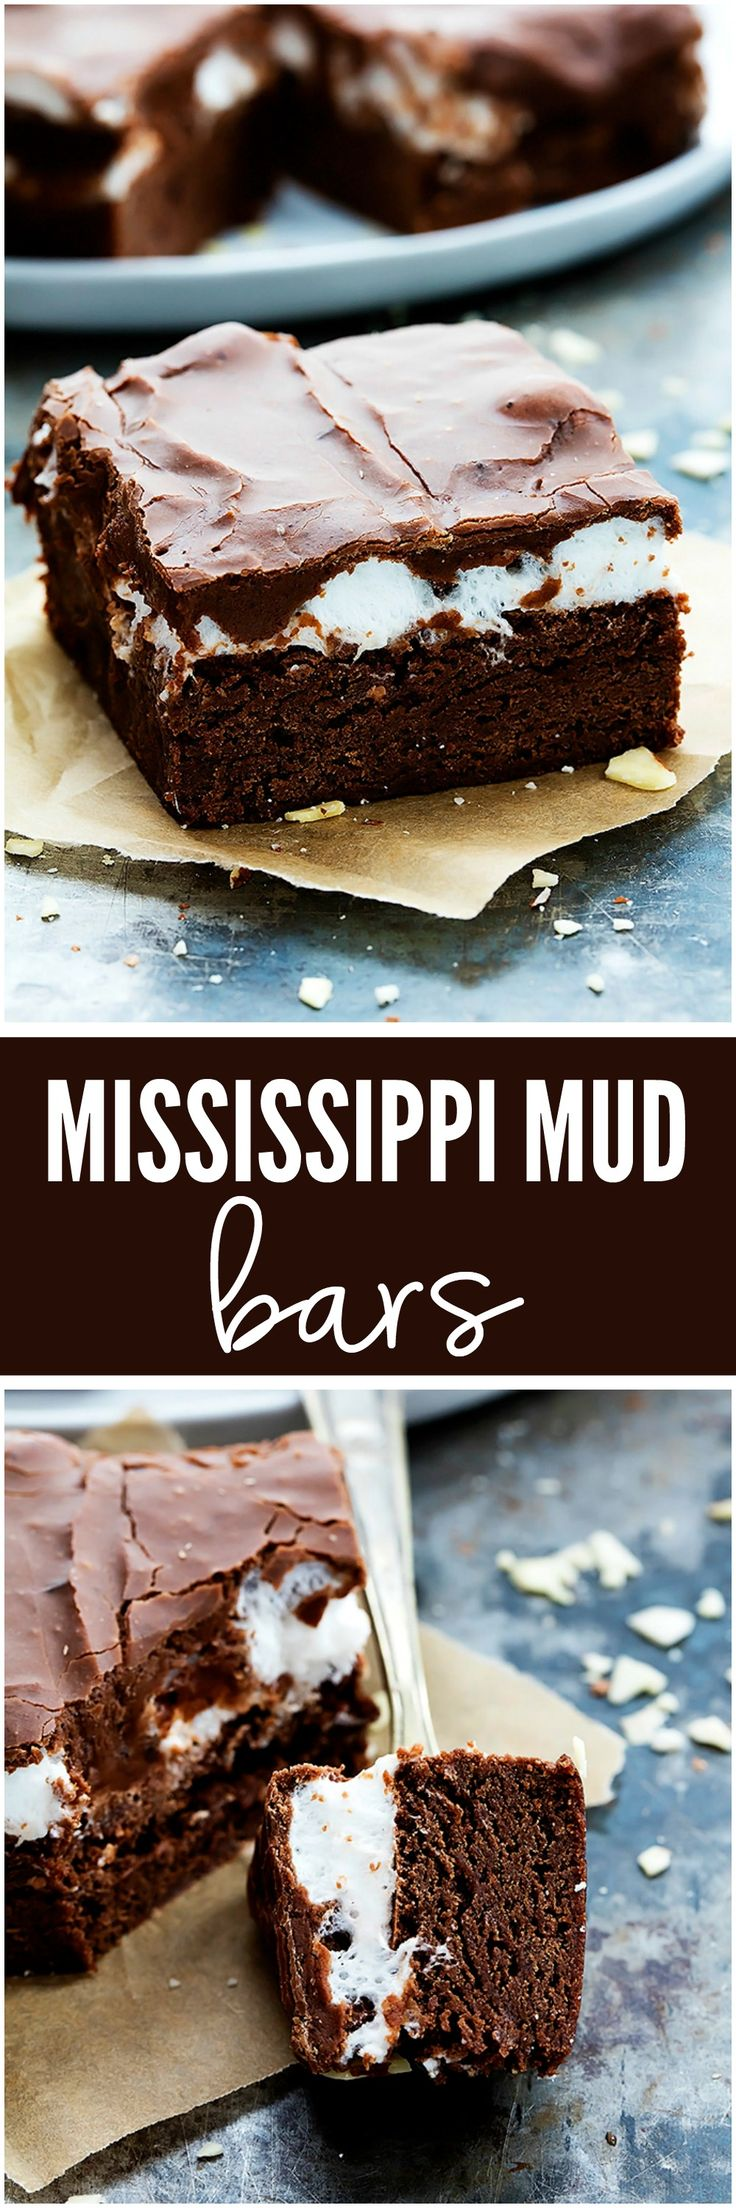 Mississippi Mudslide Bars | The Recipe Critic | these are are a chewy brownie base, topped with a fluffy marshmallow layer, and finished off with a rich and silky chocolate frosting. They are so addictive!